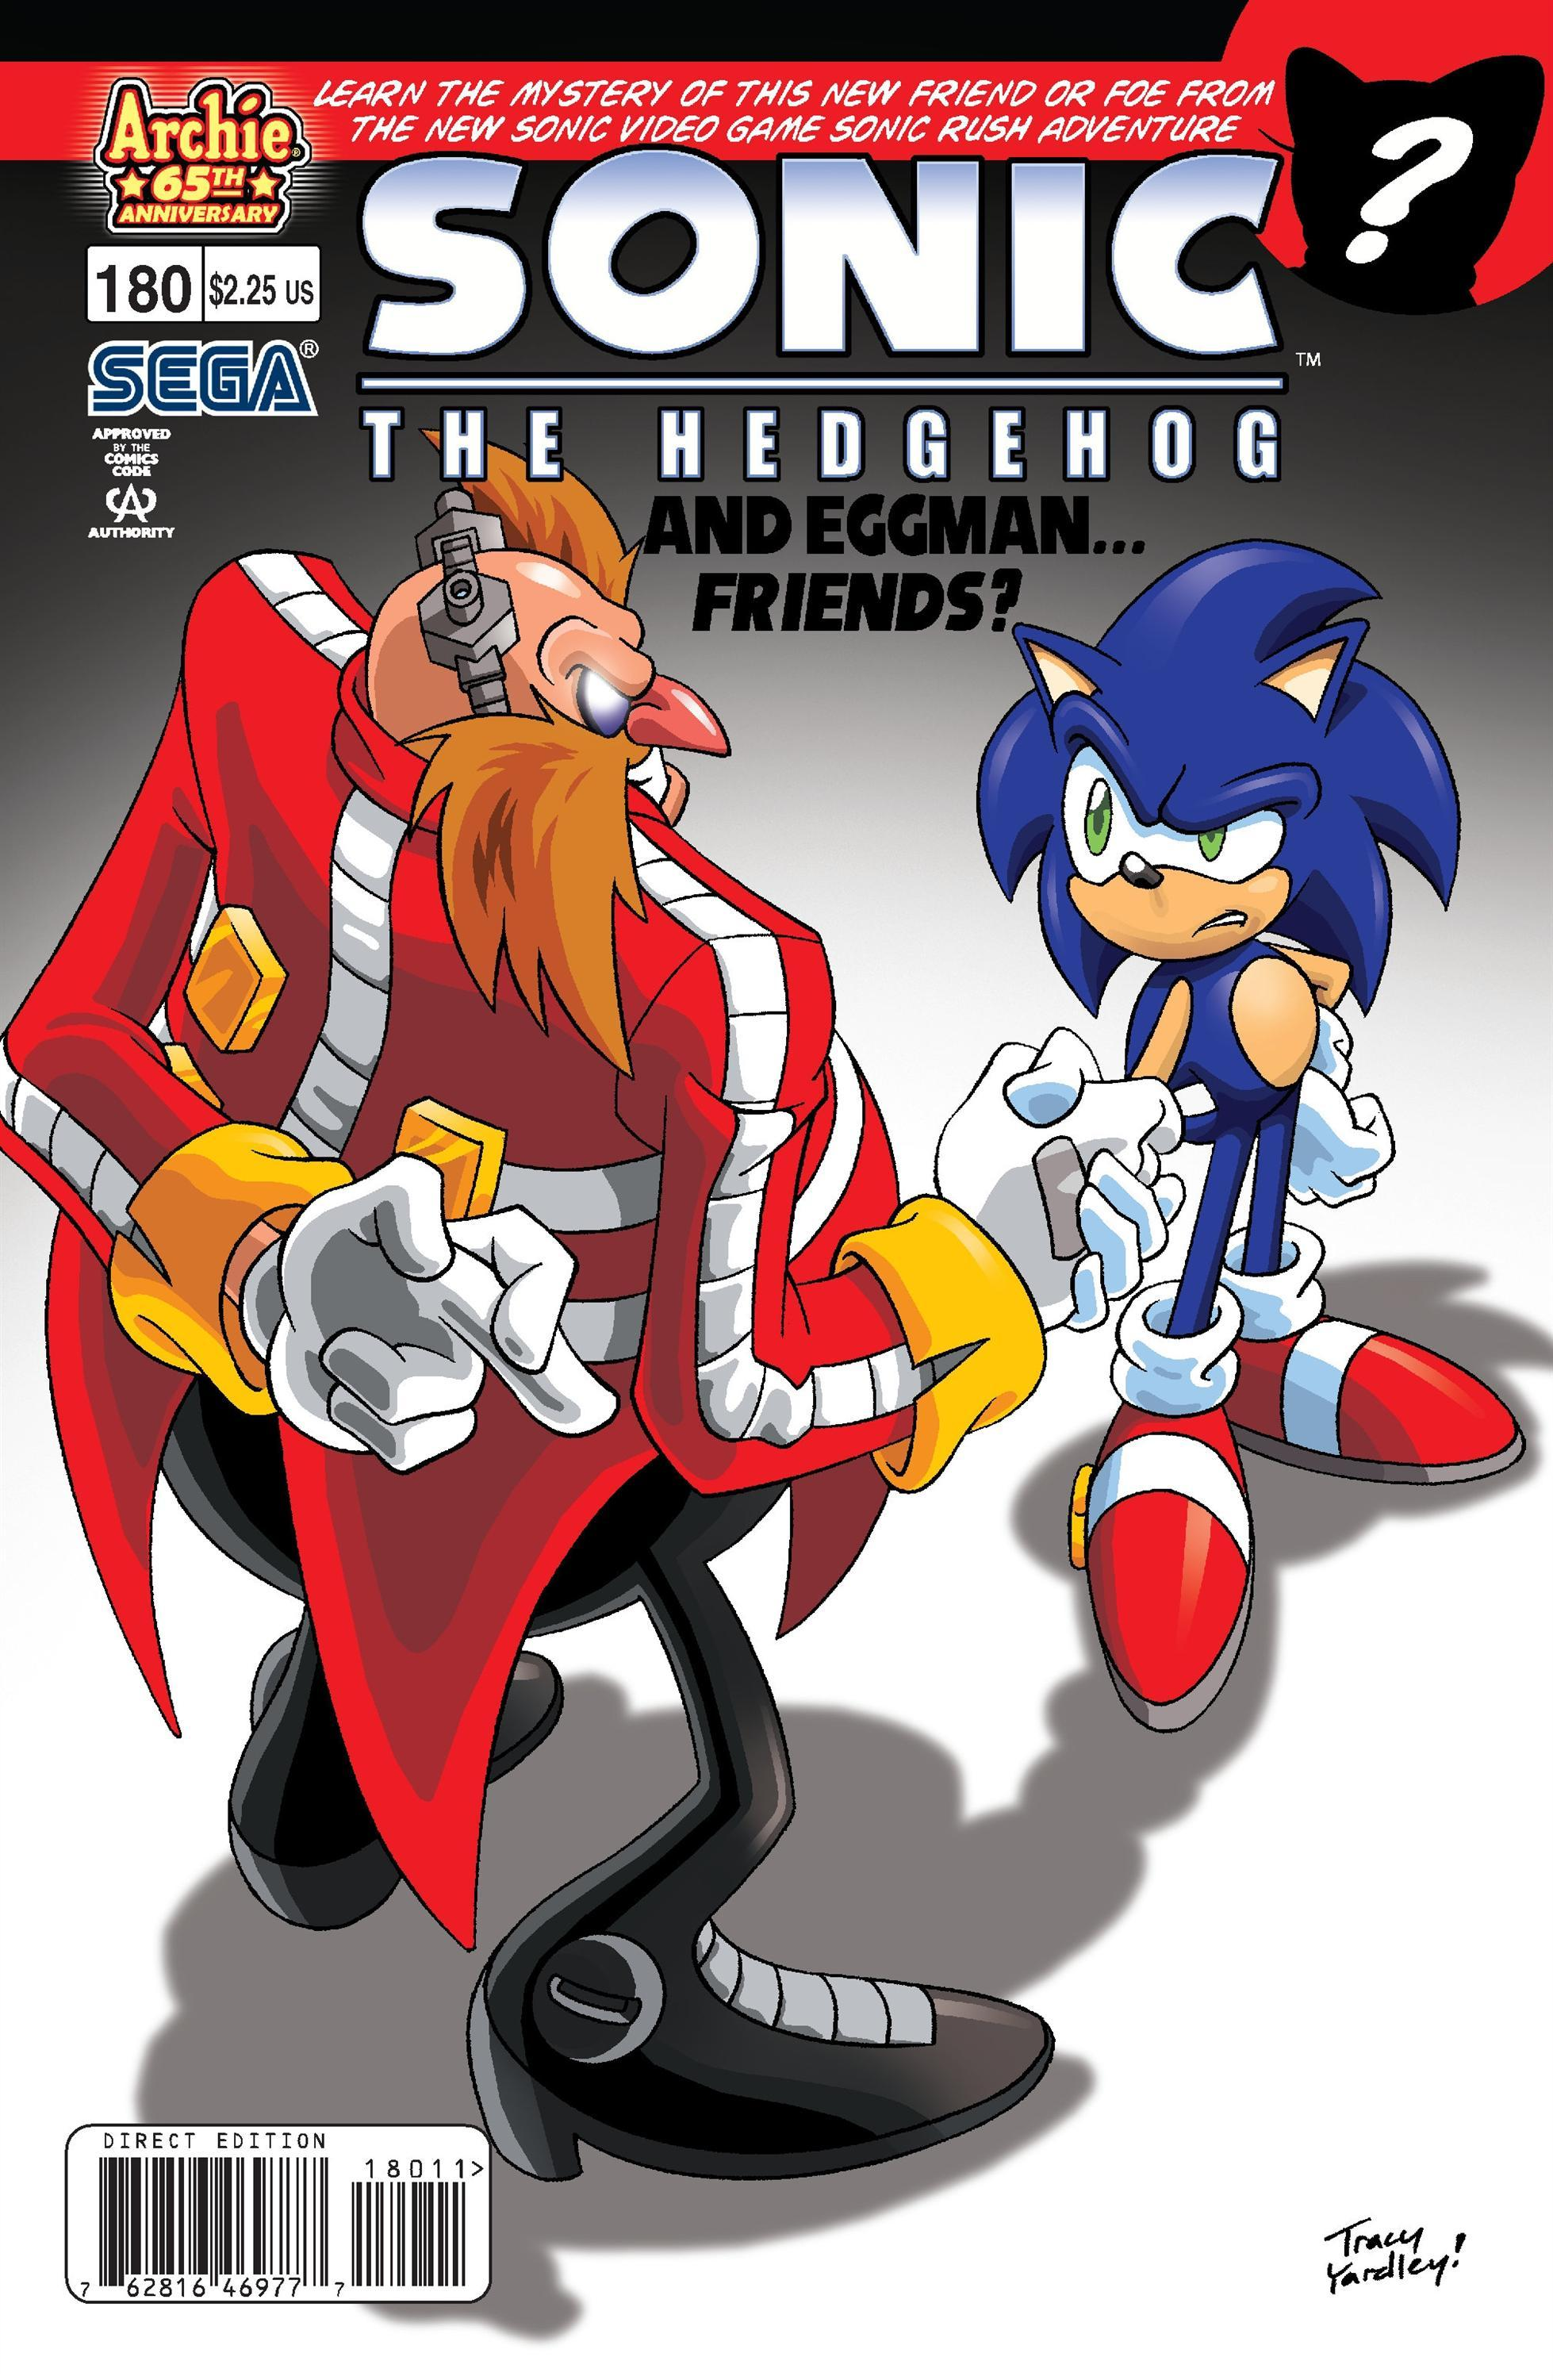 Sonic The Hedgehog 180